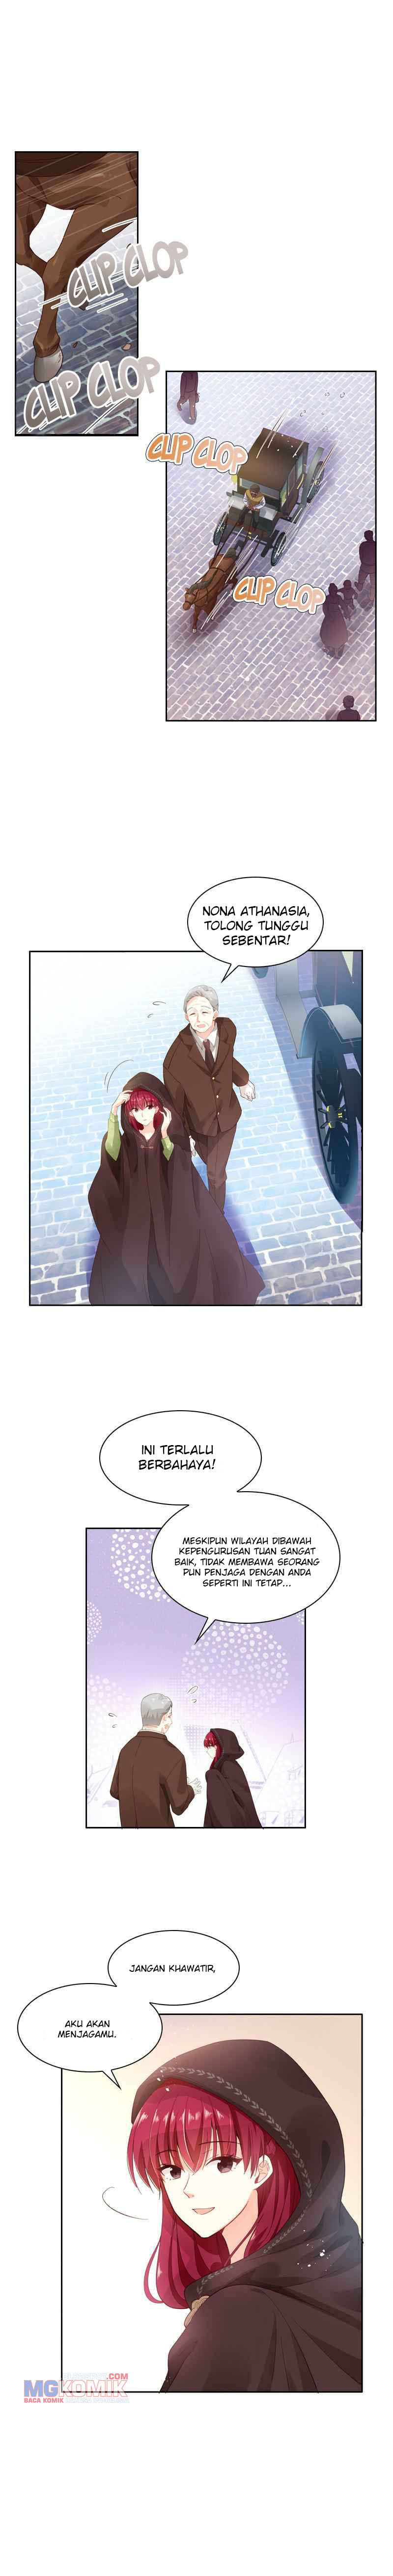 The Evil Lady Will Change Chapter 10